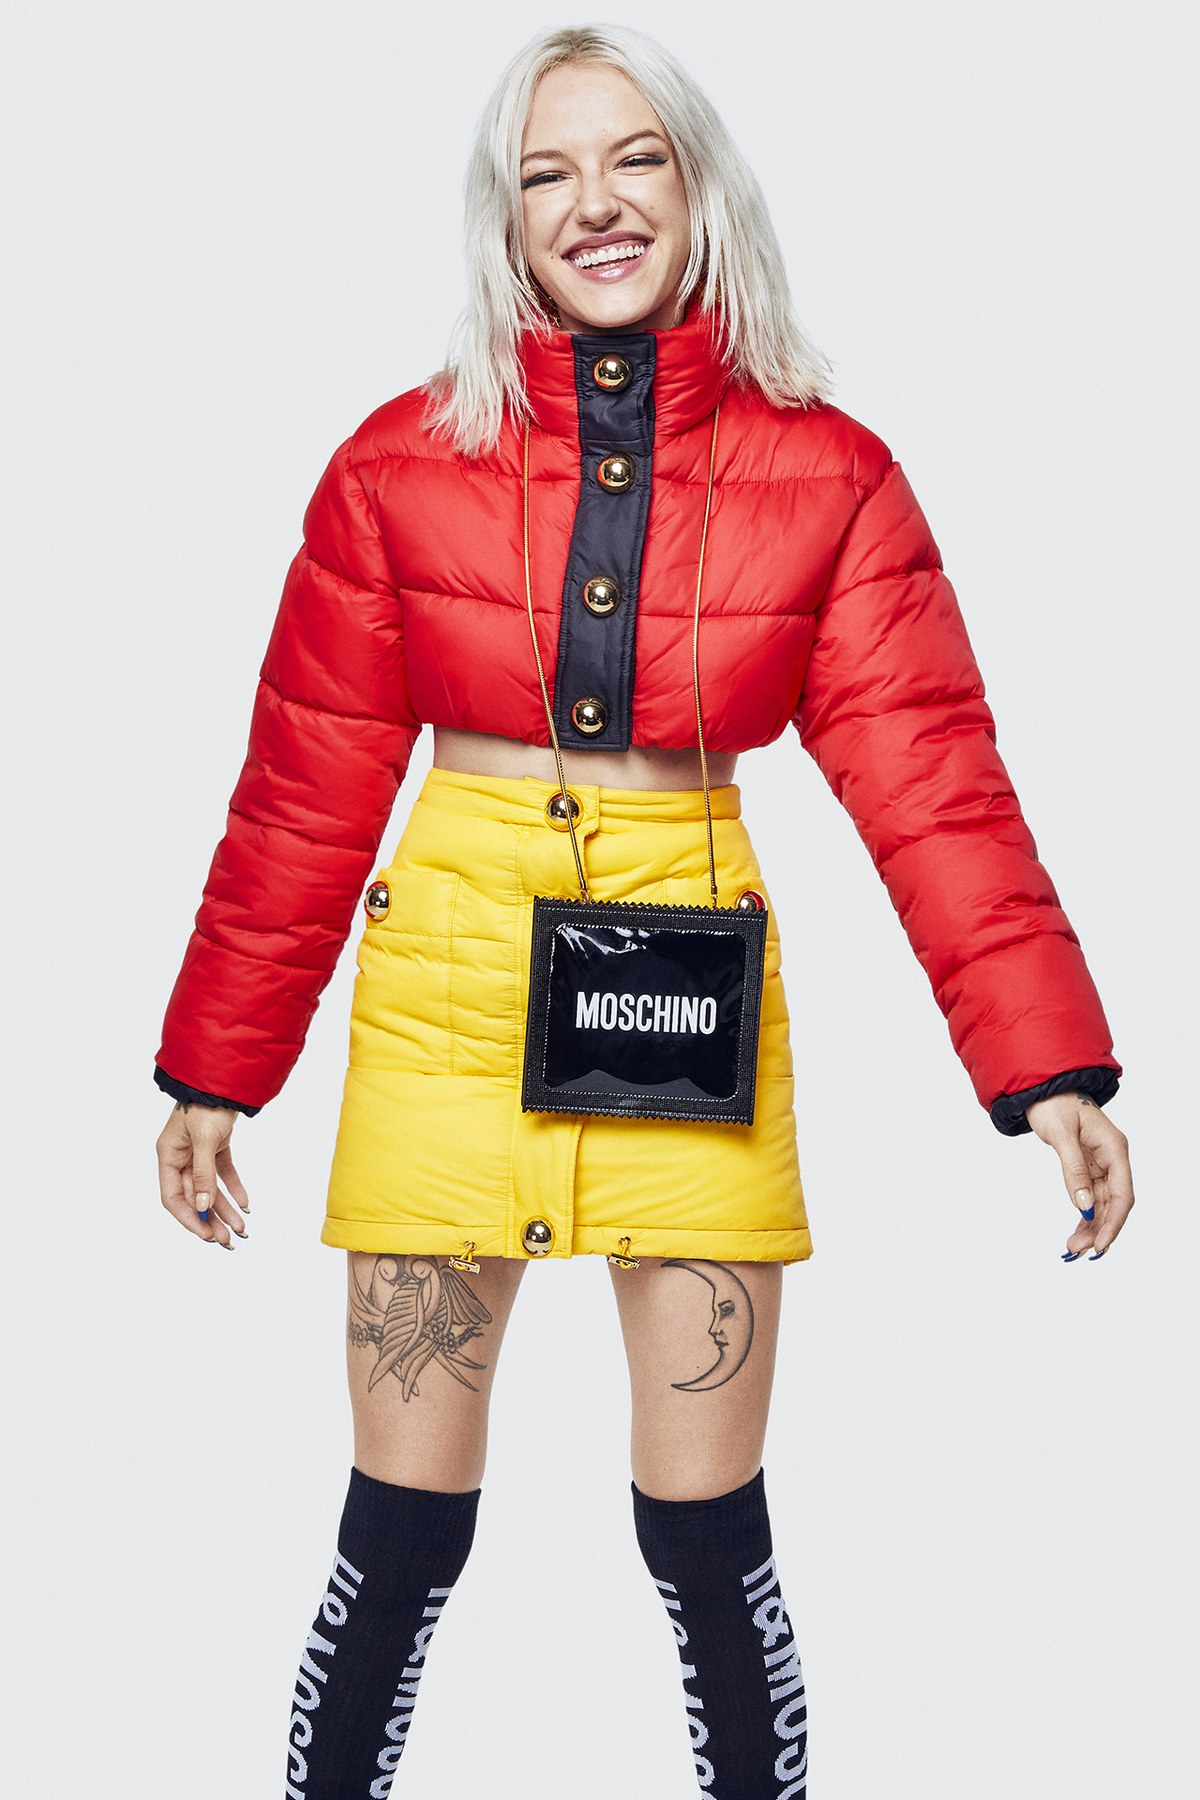 A little look into the upcoming HMxMoschino designer collection